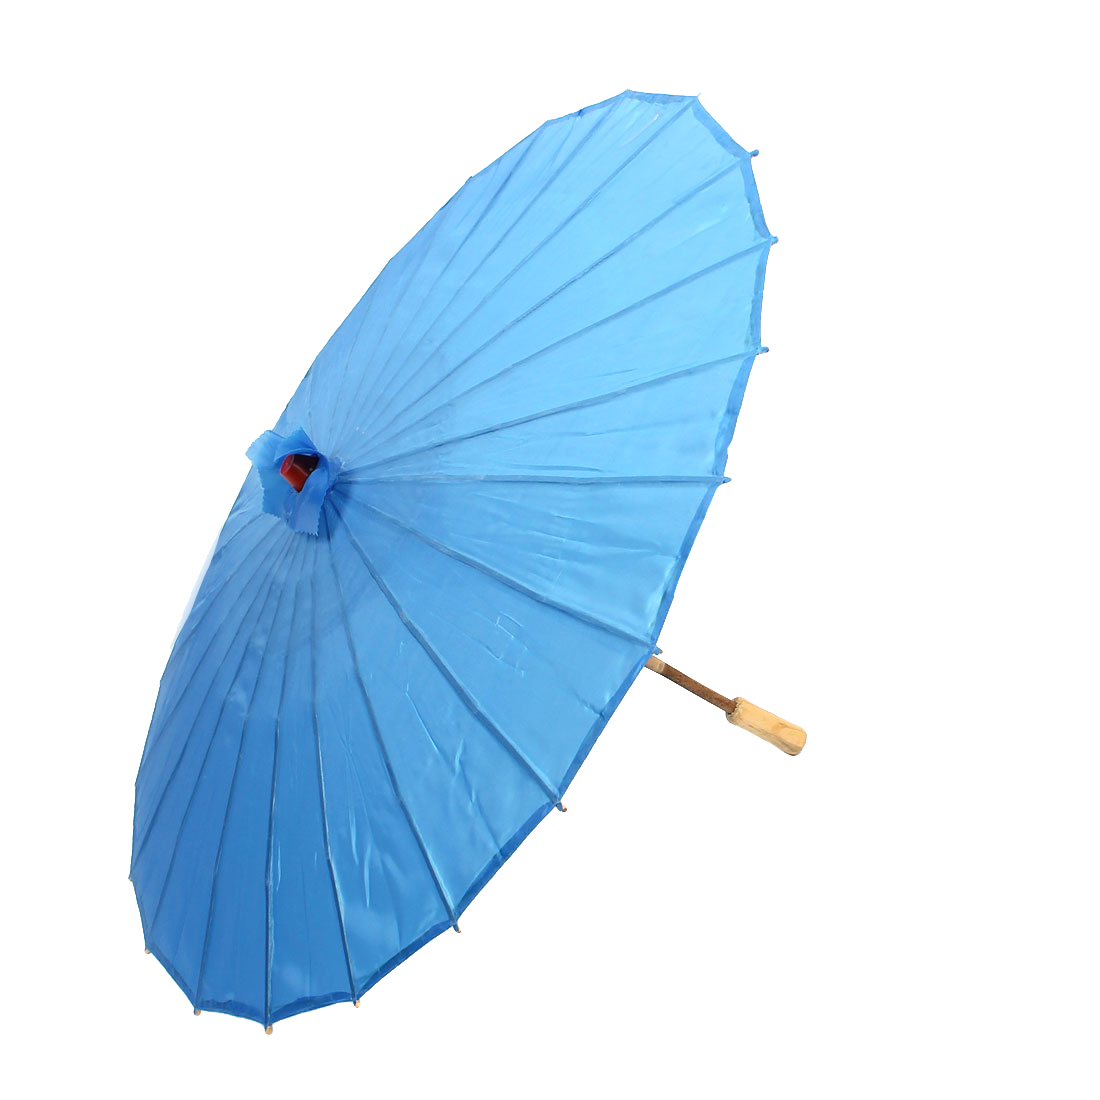 Bamboo Japanese Chinese Style Traditional Manually Dancing Umbrella Parasol Dark Blue 78cm Dia